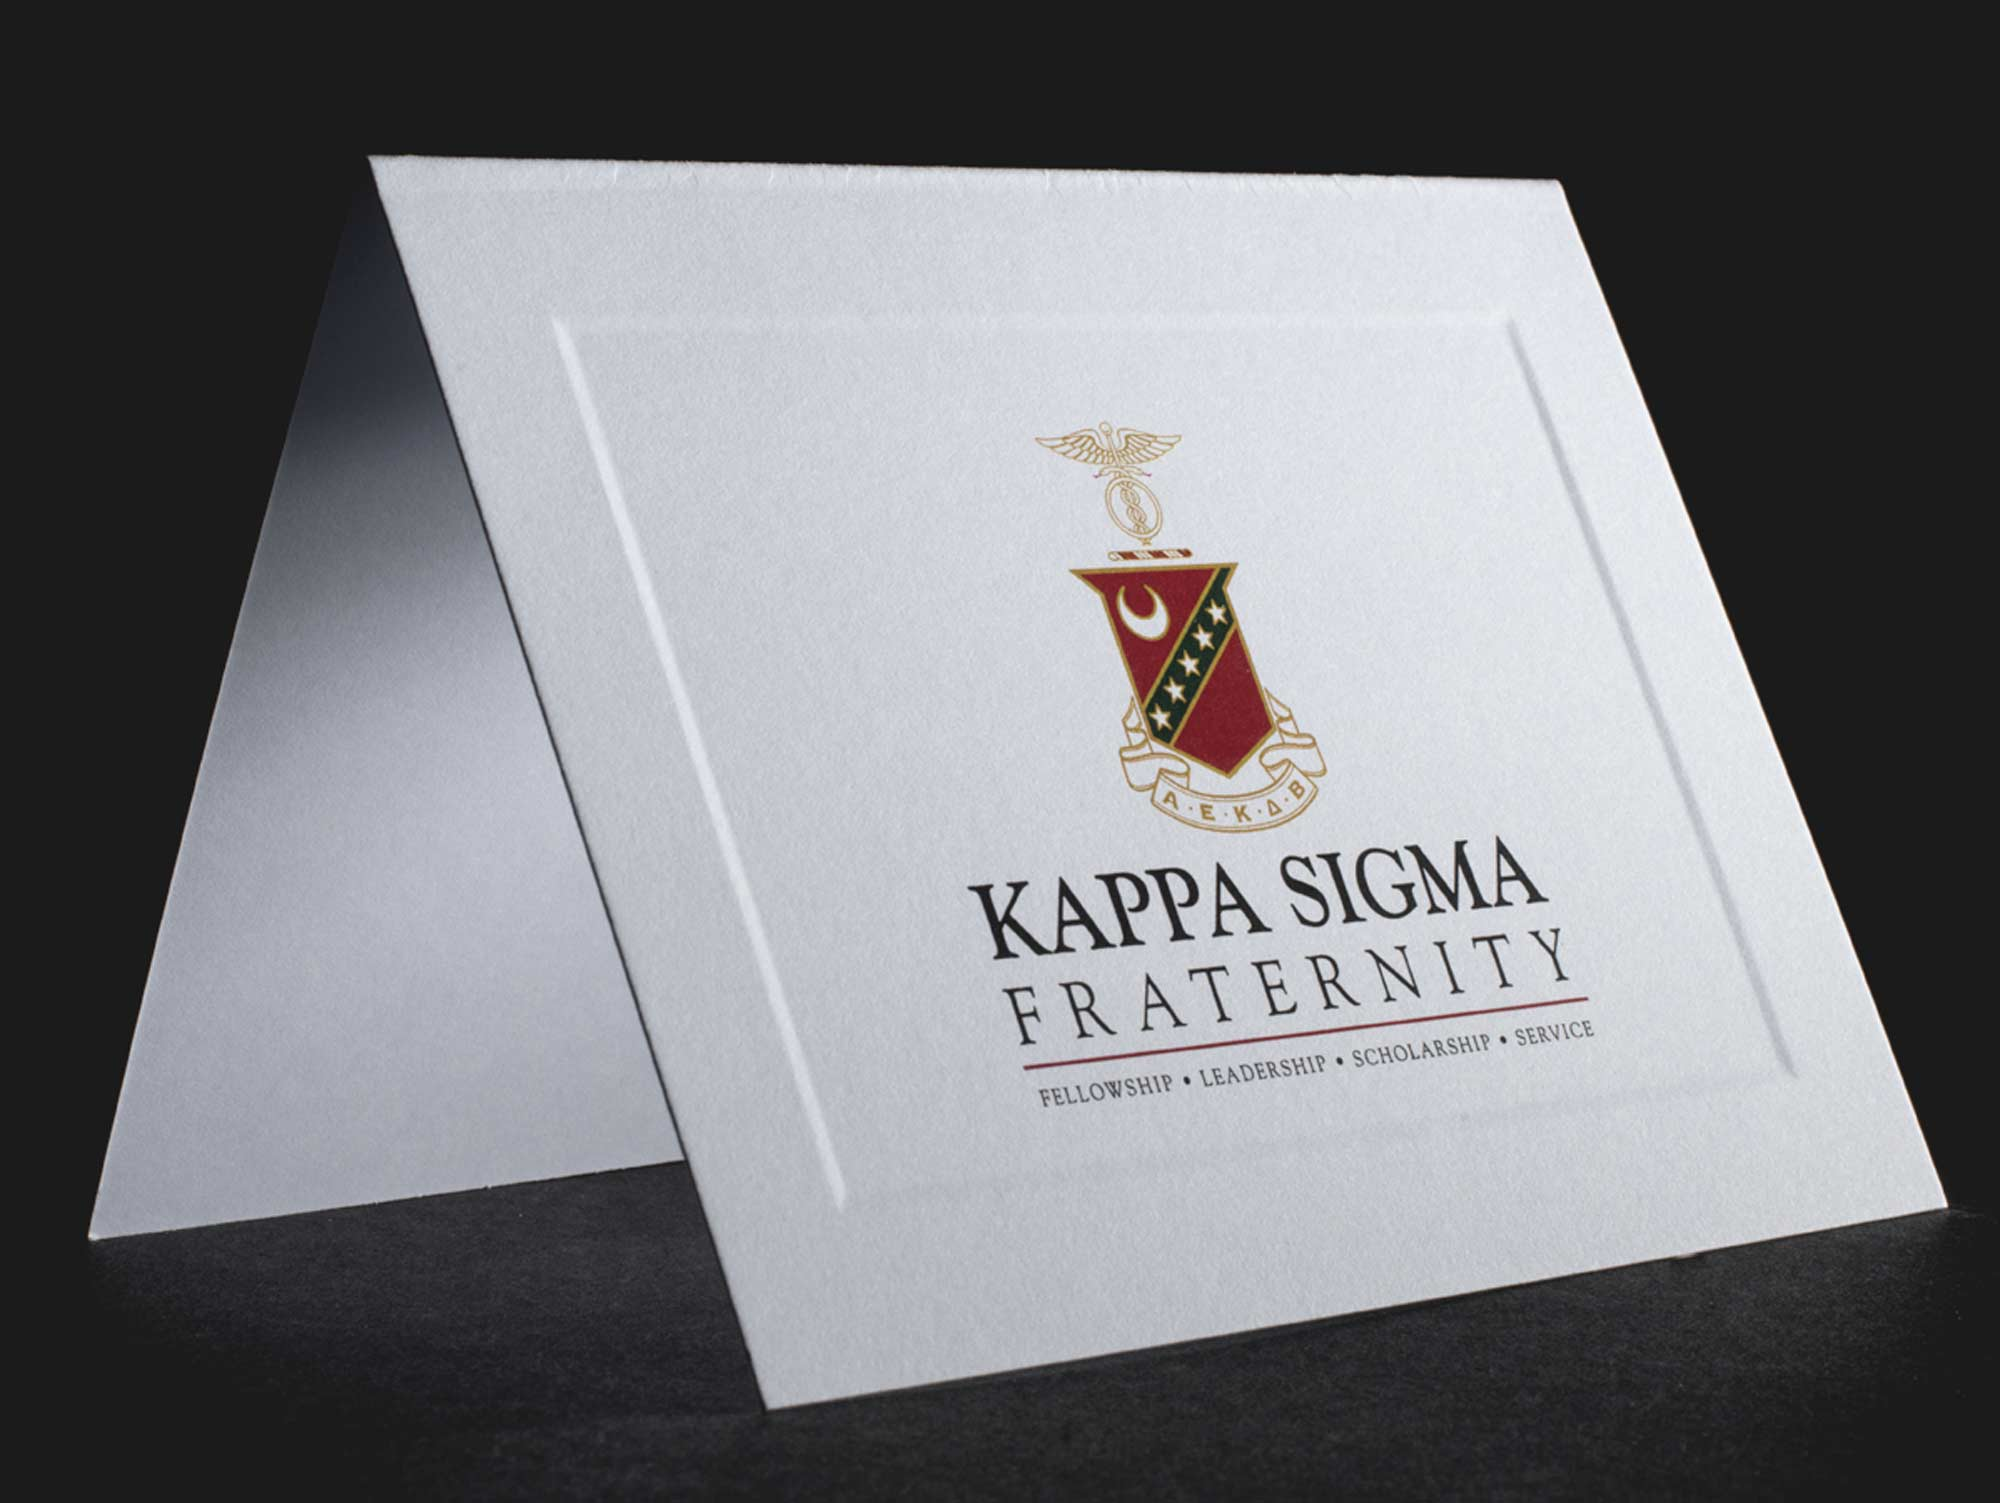 Official Notecards With New Graphic Standard Kappa Sigma